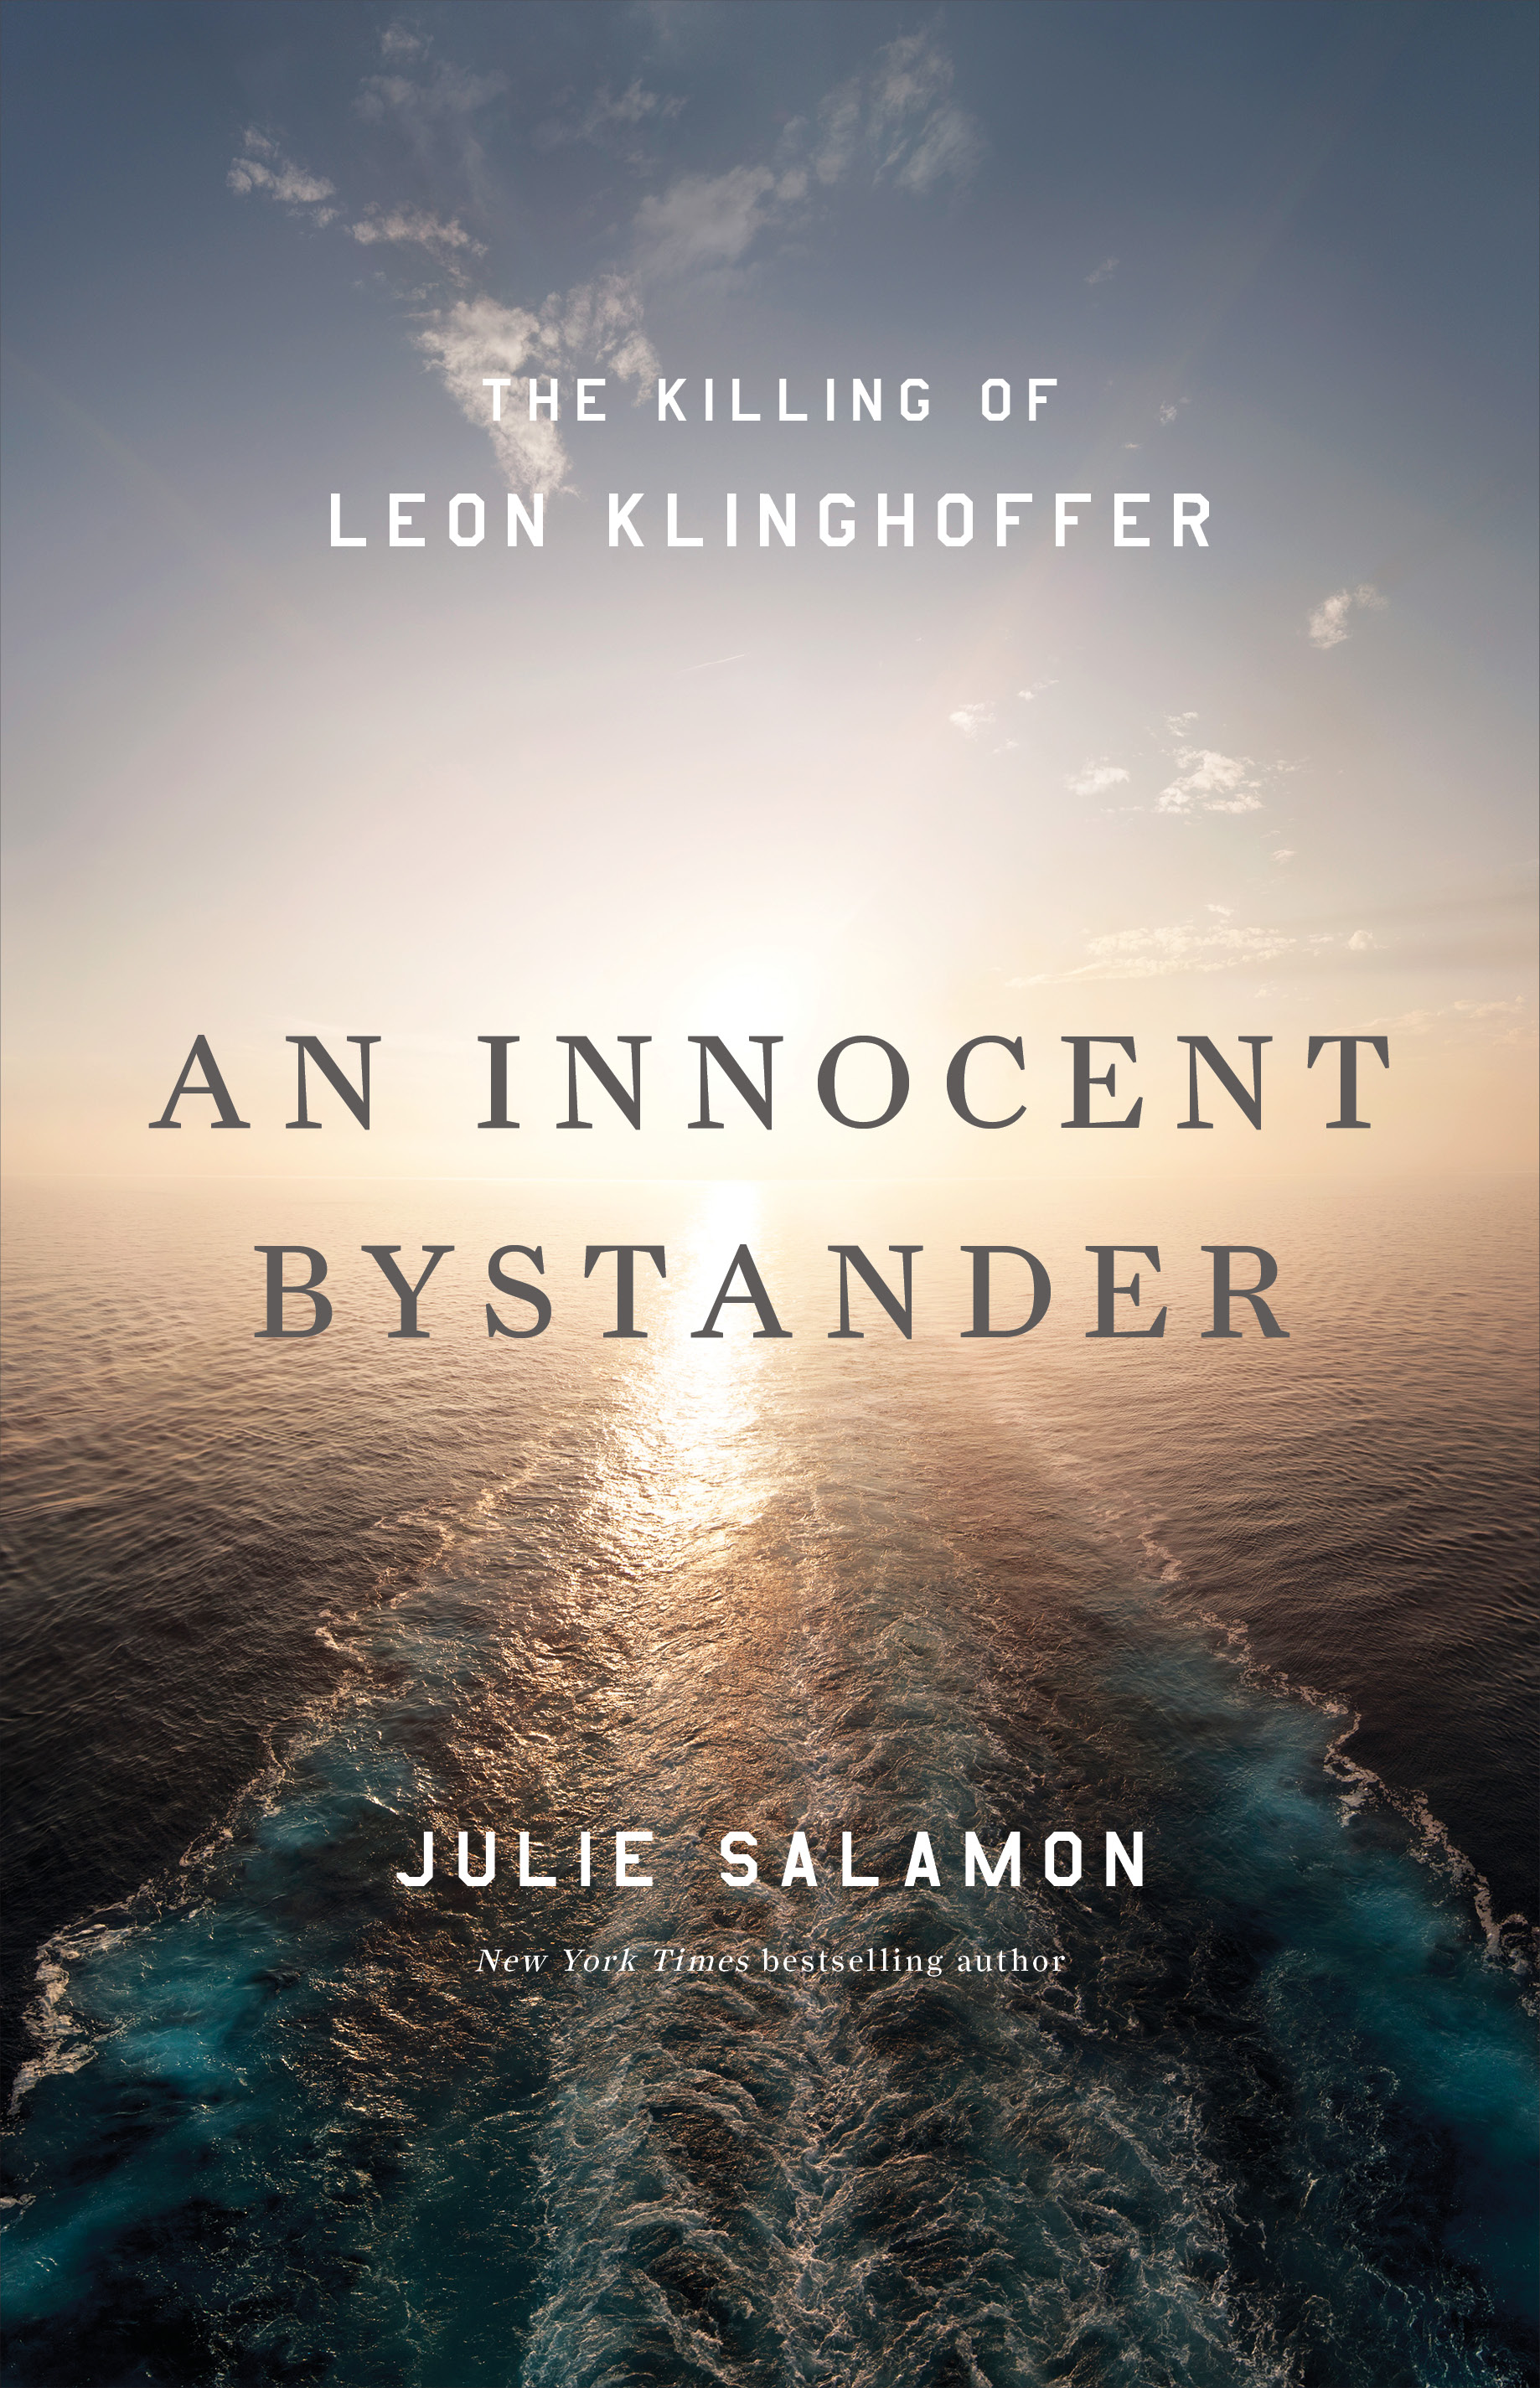 AN INNOCENT BYSTANDER by Julie Salamon